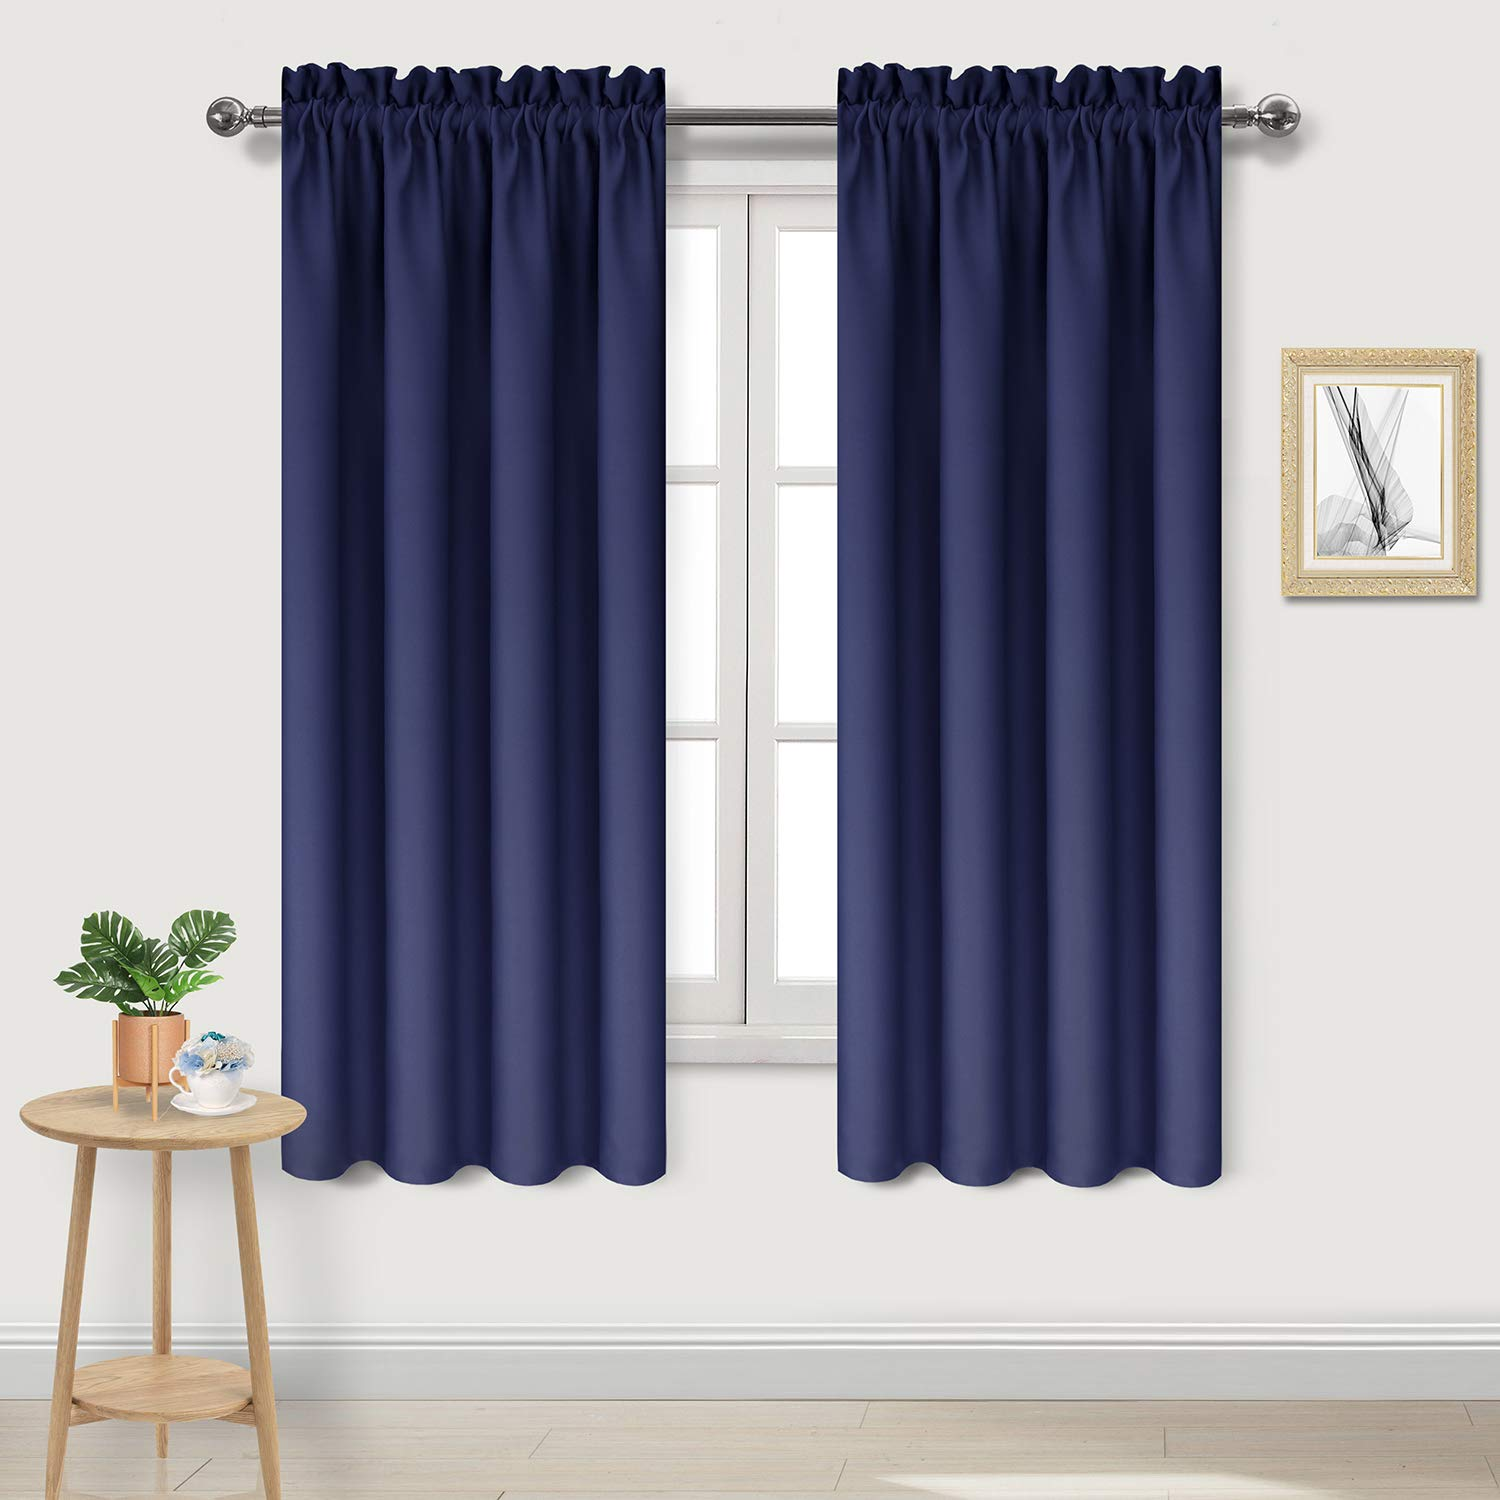 DWCN Room Darkening Thermal Insulated Bedroom Curtains Navy Blue Blackout  Curtains Living Room Curtain Panel, Set of 2 Rod Pocket Drapes, 42 x 72 ...